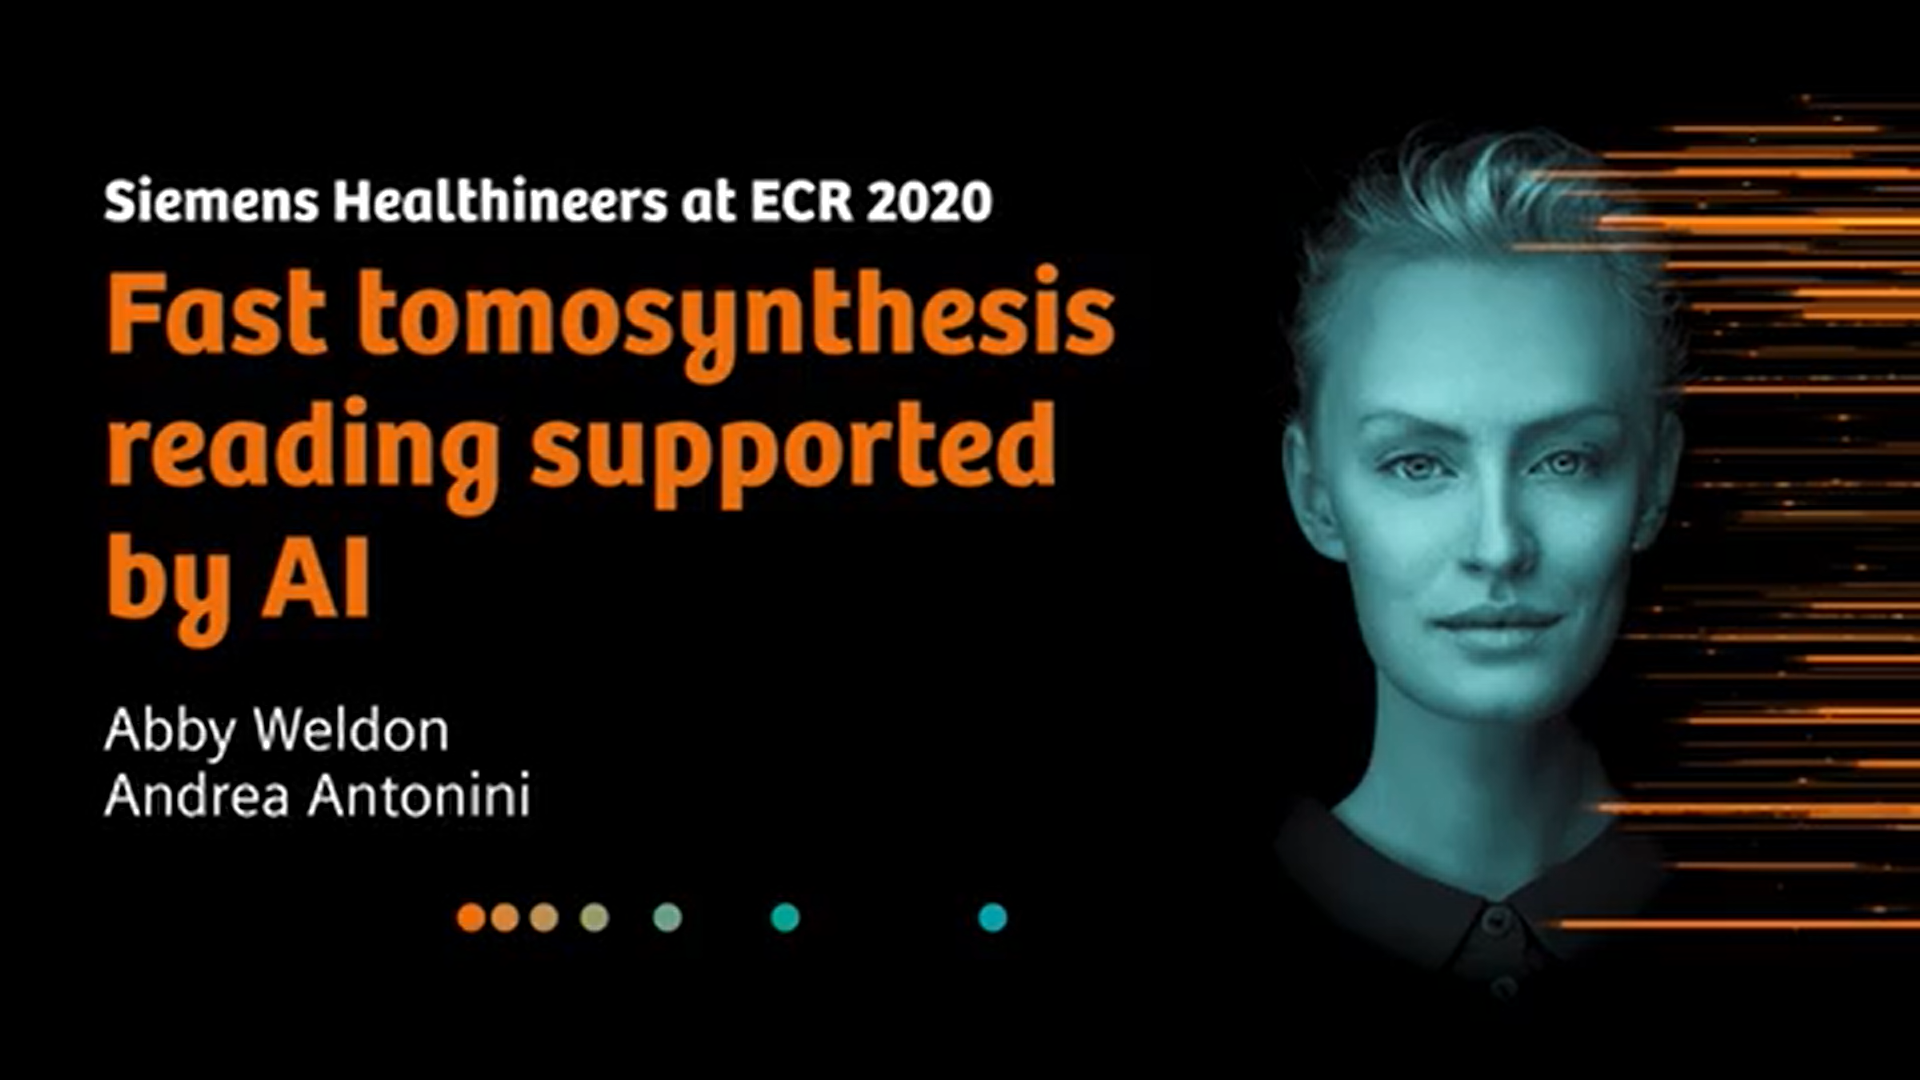 siemens healthineers at ecr 2020